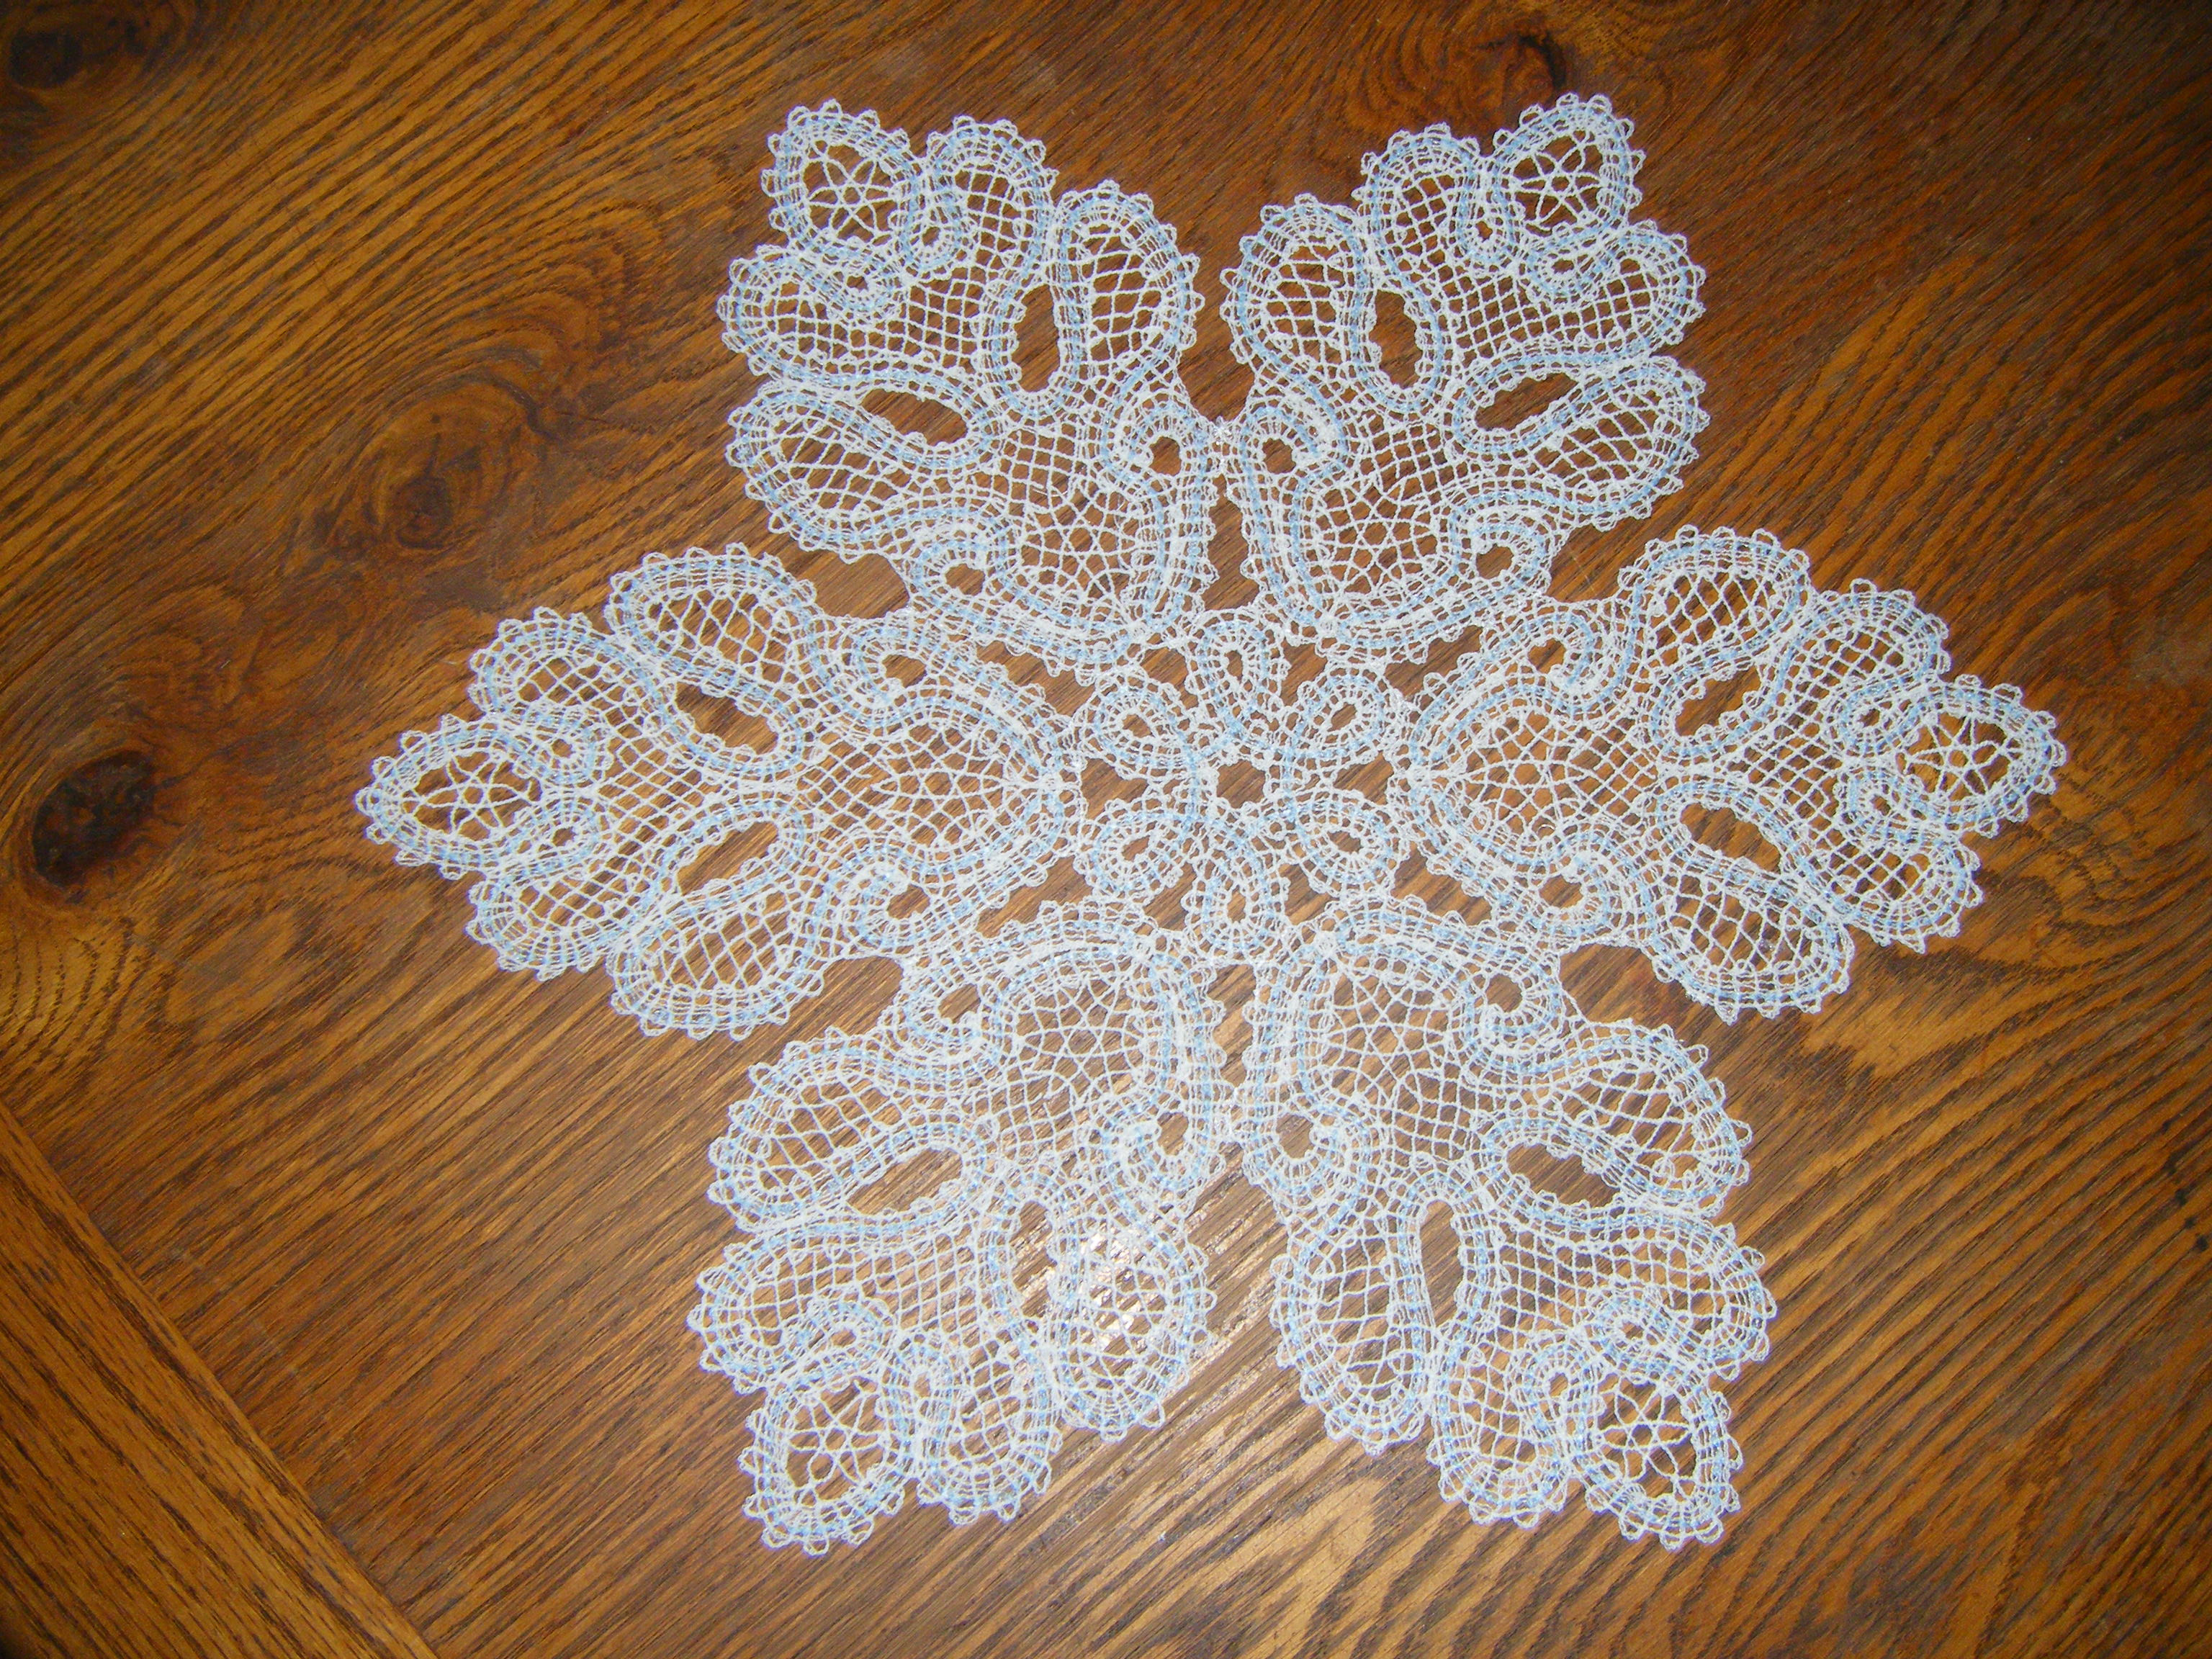 Crochet Ideas Best Of How to Crochet Snowflake Patterns 33 Amazing Diy Of Brilliant 40 Pictures Crochet Ideas